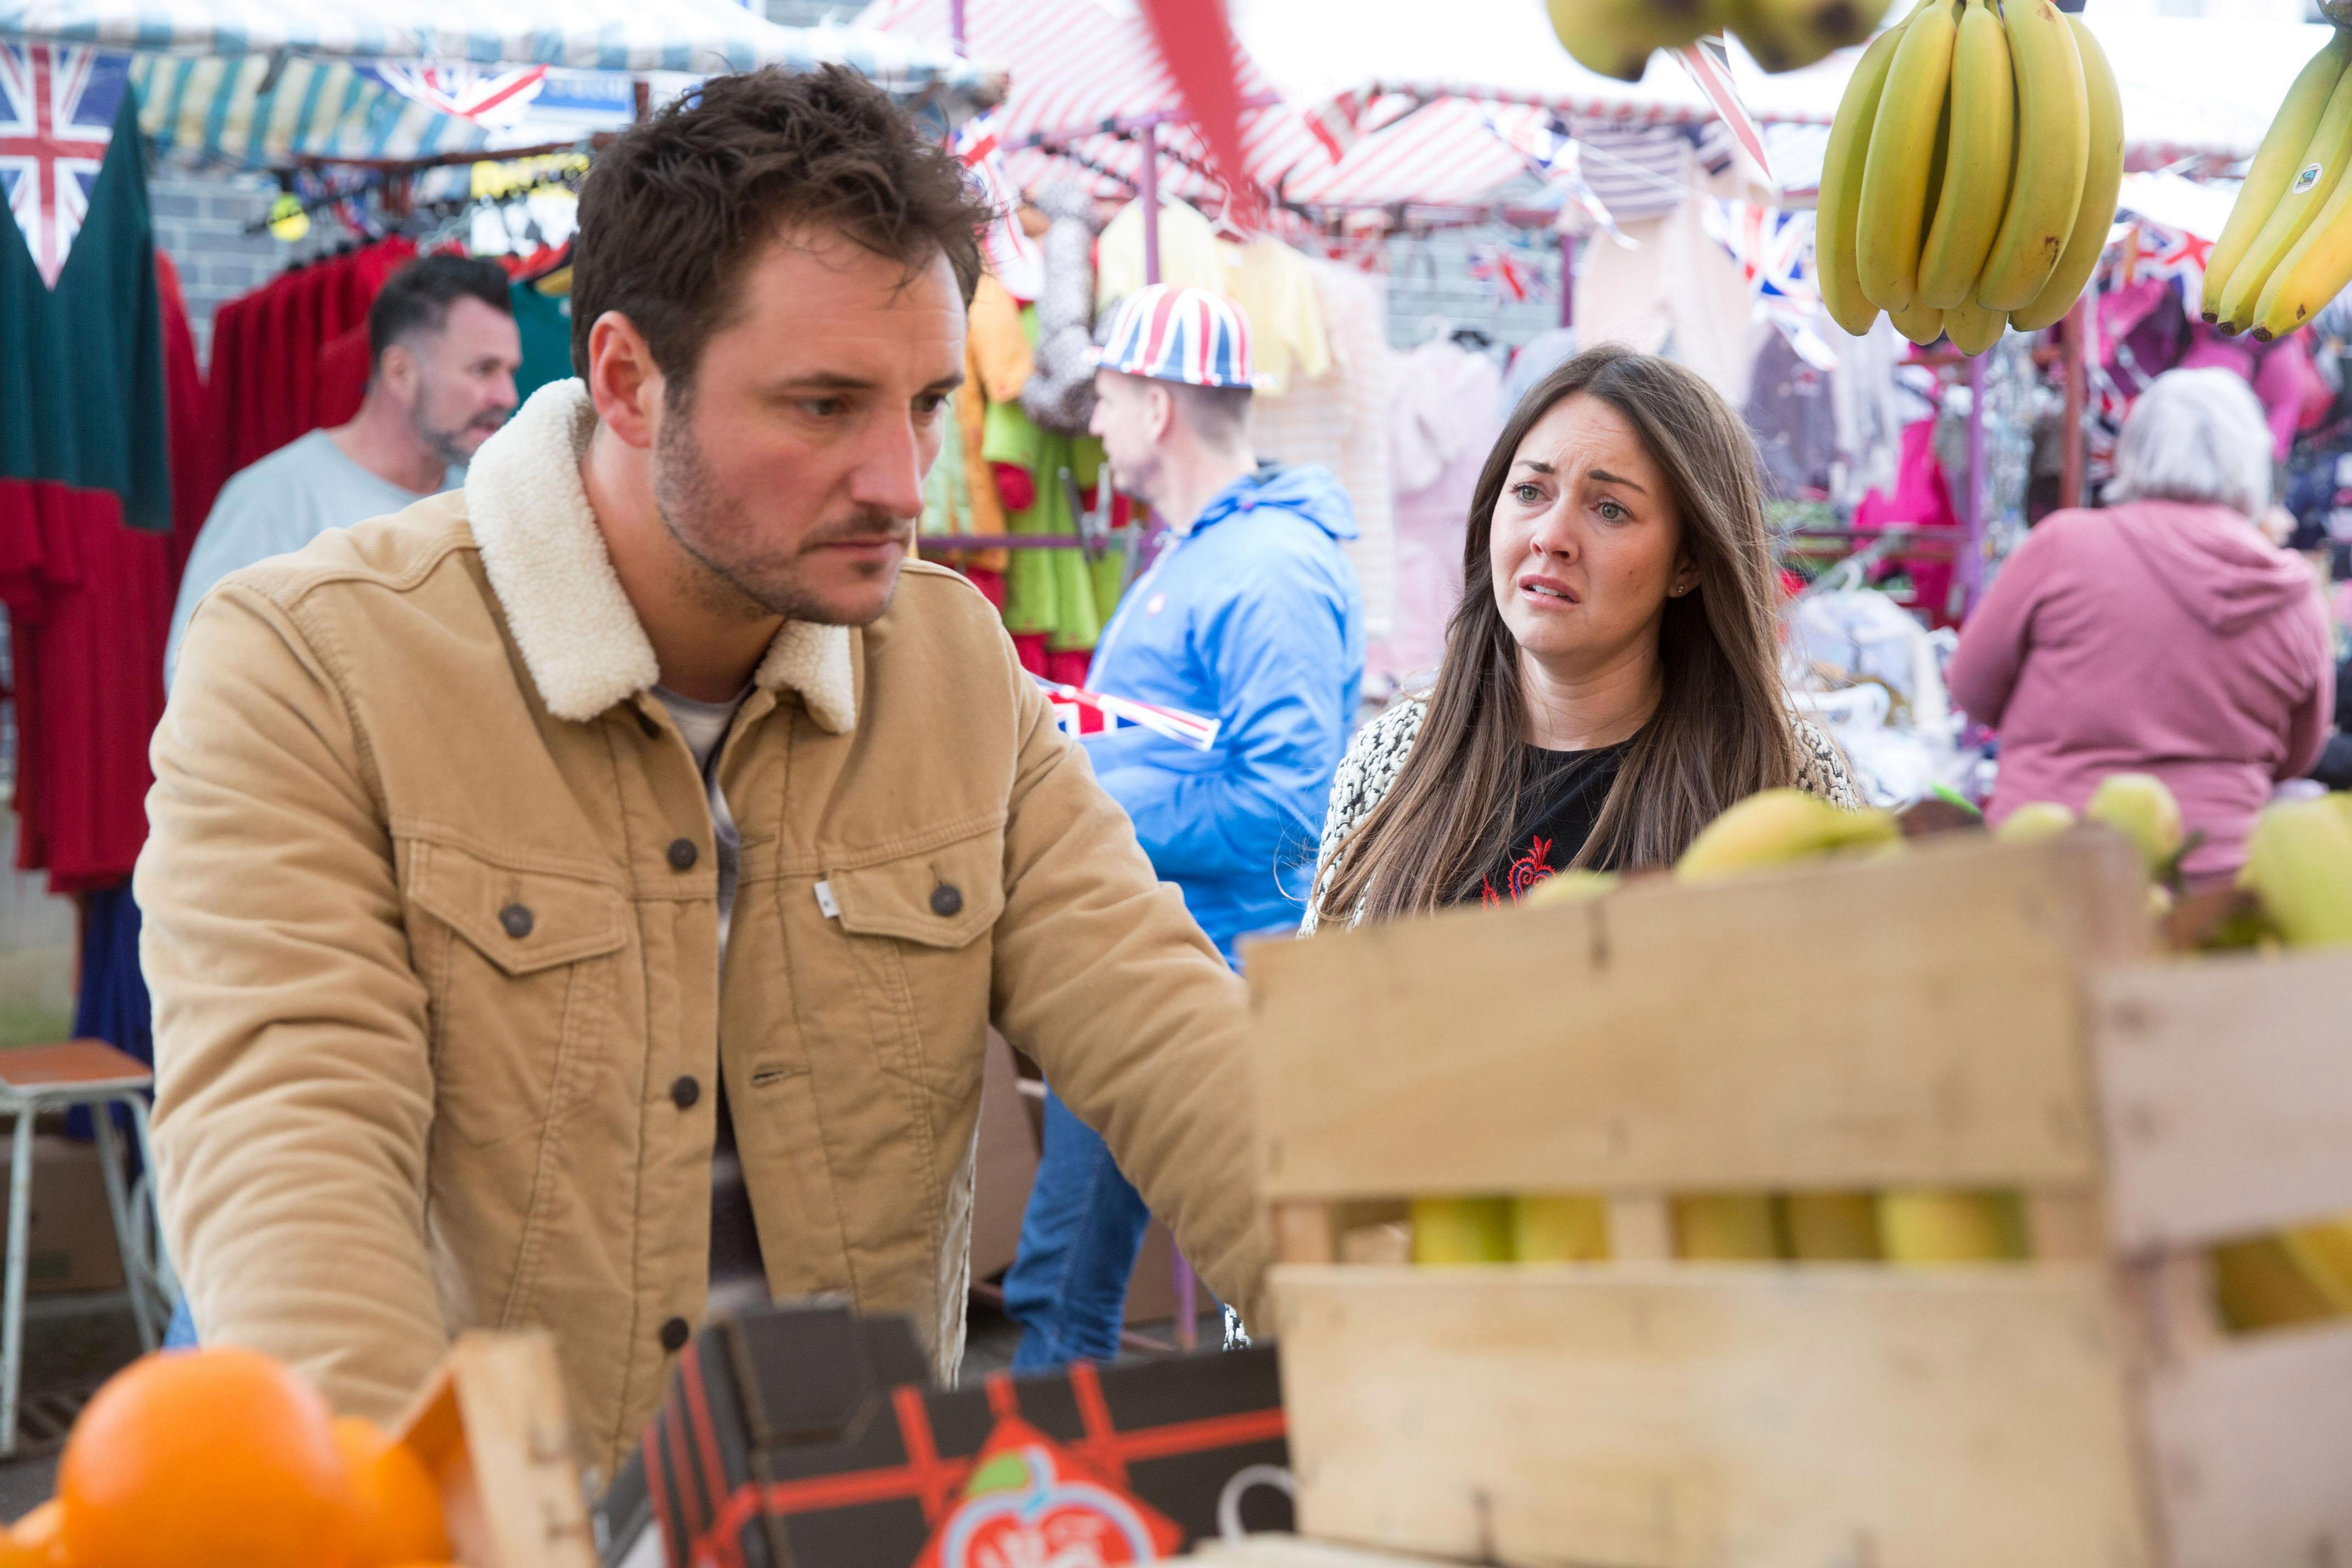 EastEnders spoilers: Martin Fowler caught between exes Sonia and Stacey as he struggles to make a decision about his future